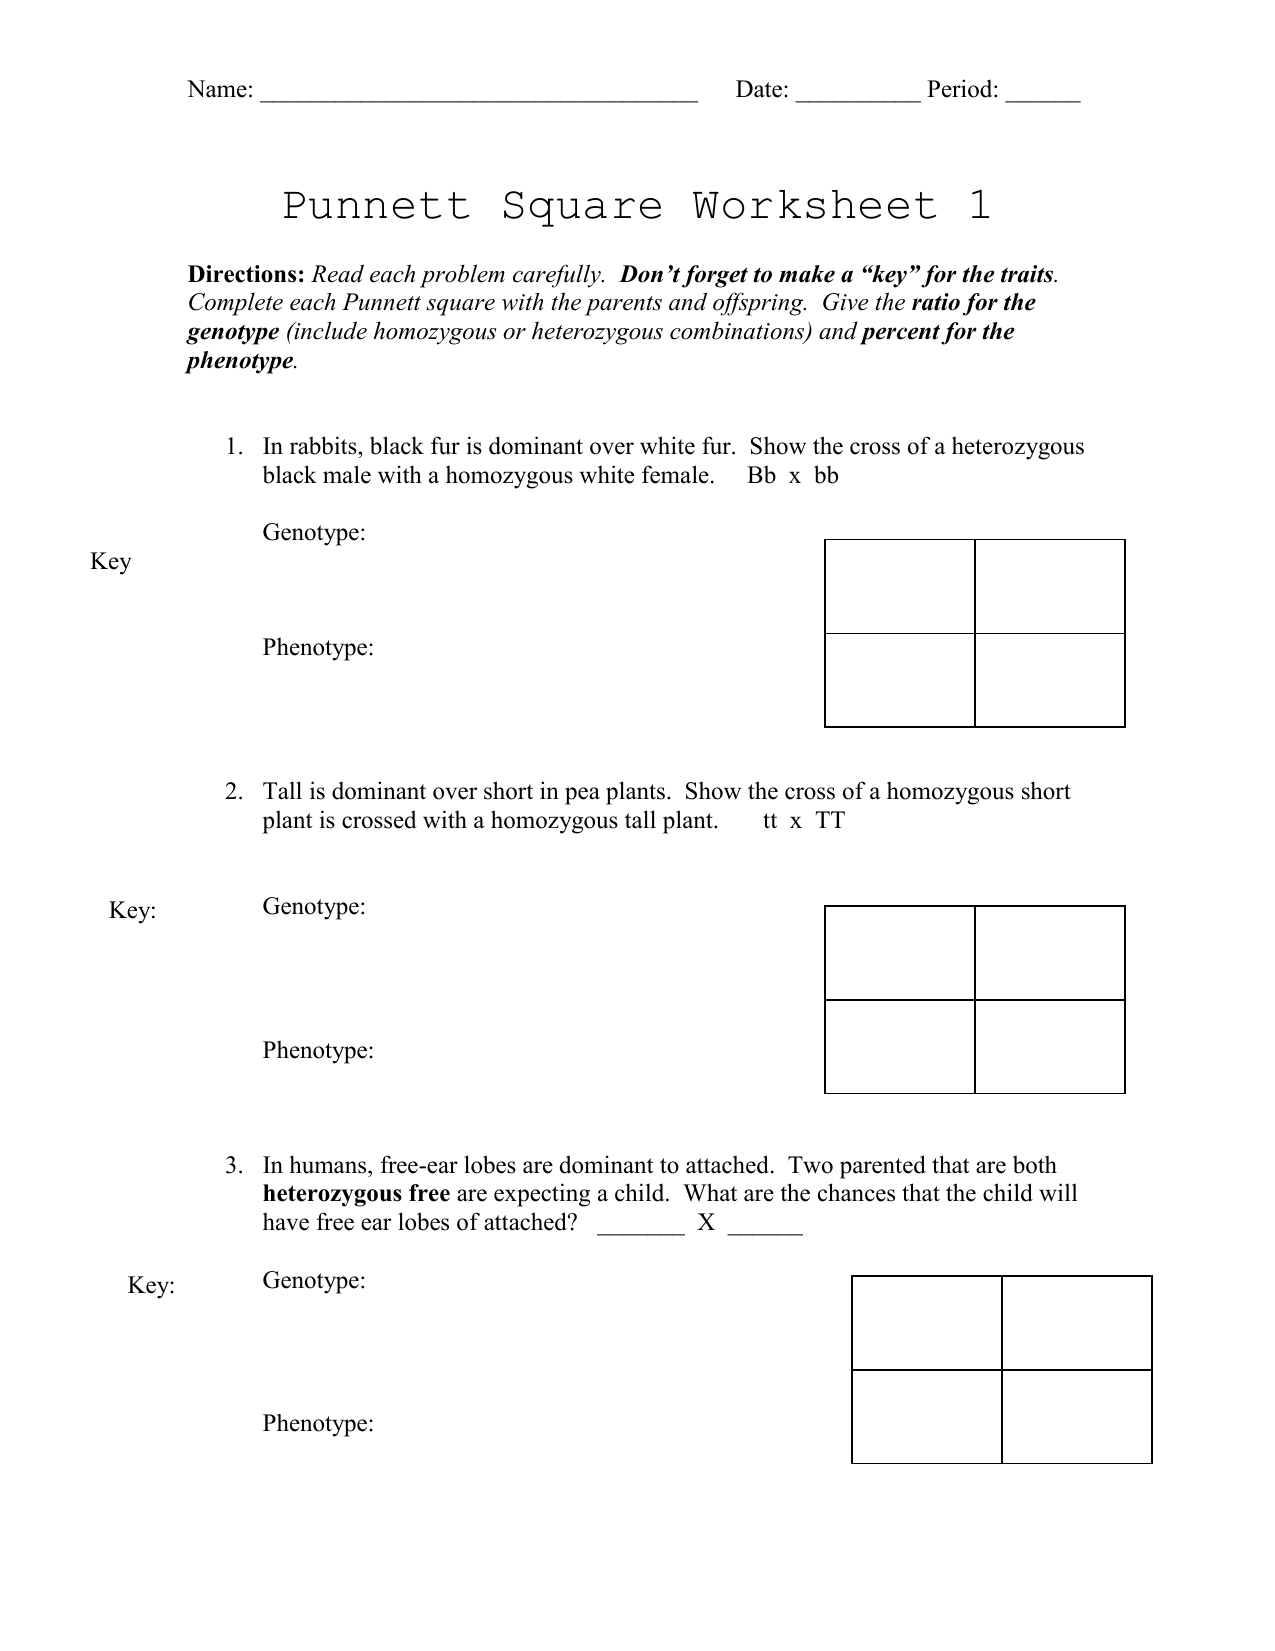 Punnett Square Worksheet 2 Answer Key